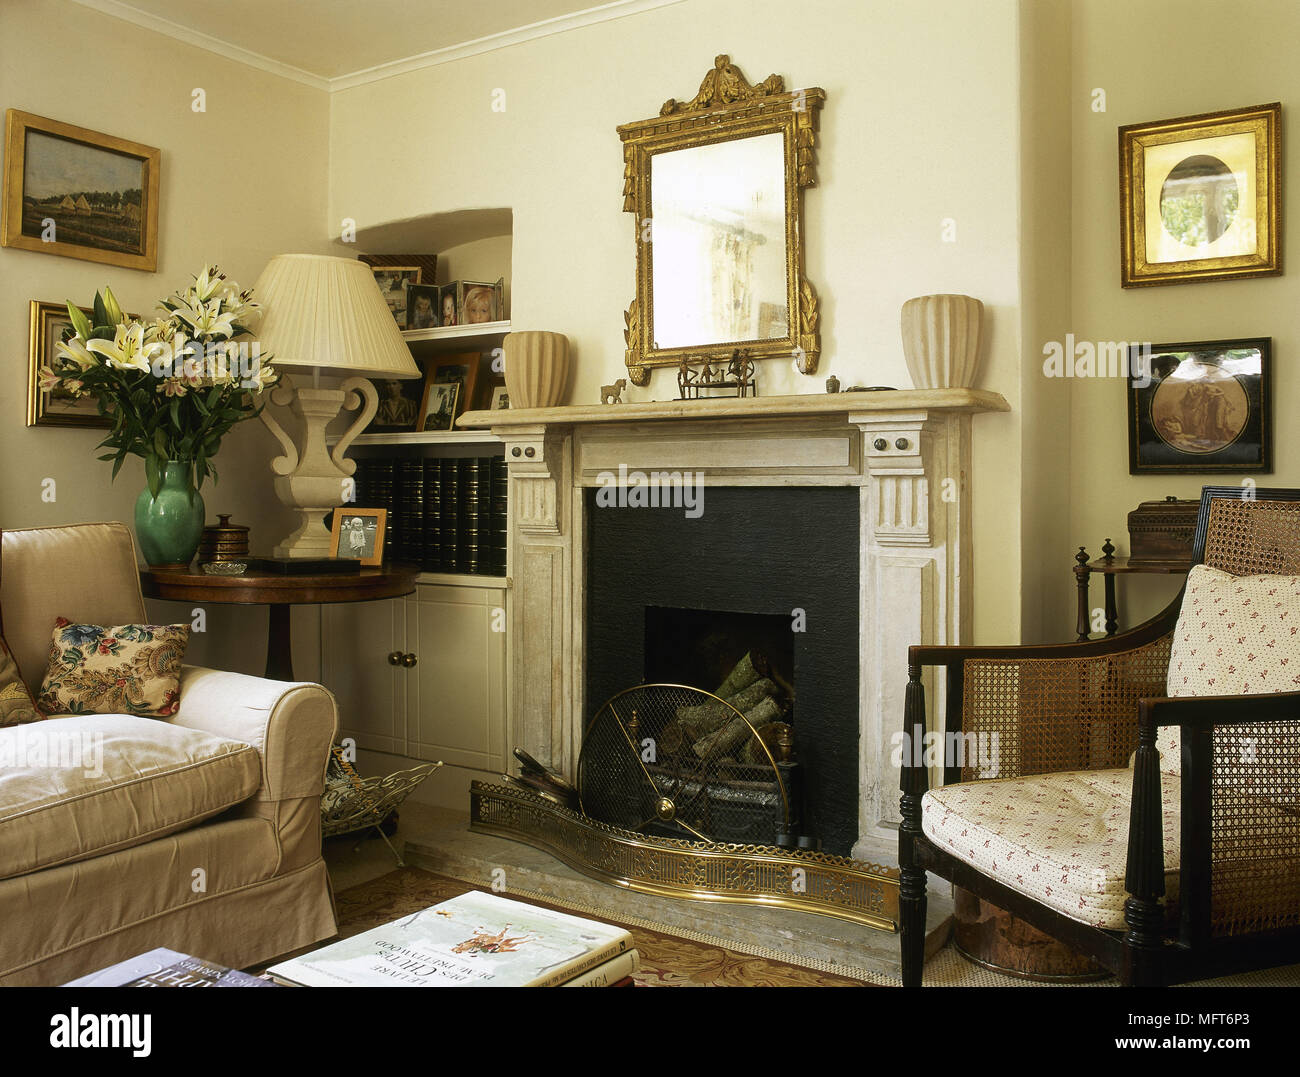 Traditional Country Sitting Room Fireplace Sofa Cane Armchair Gilt Mirror Interiors  Rooms Fireplaces